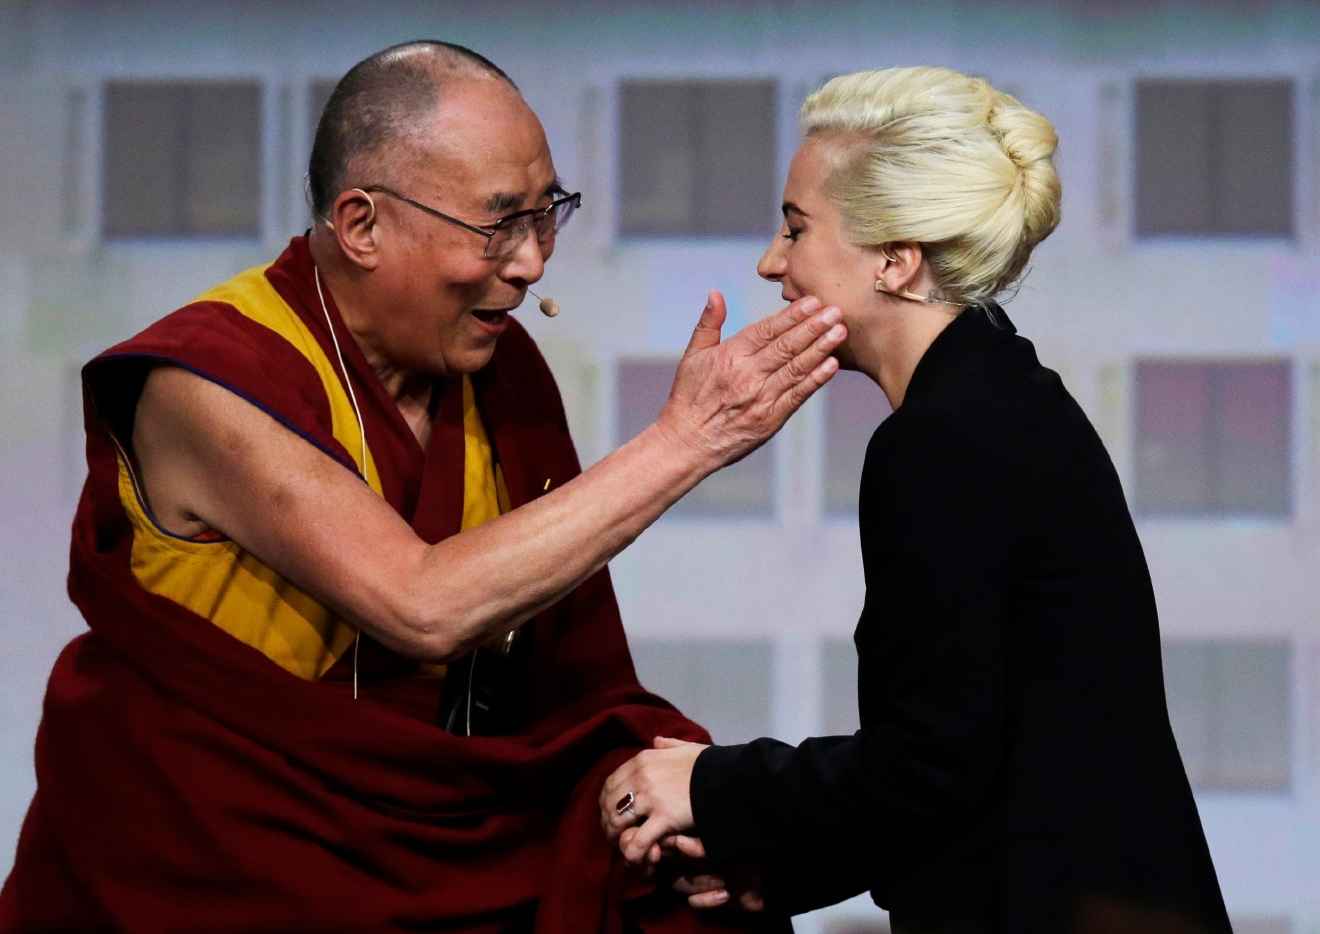 The Dalai Lama greets Lady Gaga, right, before a question and answer session at the U.S. Conference of Mayors in Indianapolis, Sunday, June 26, 2016. (AP Photo/Michael Conroy)